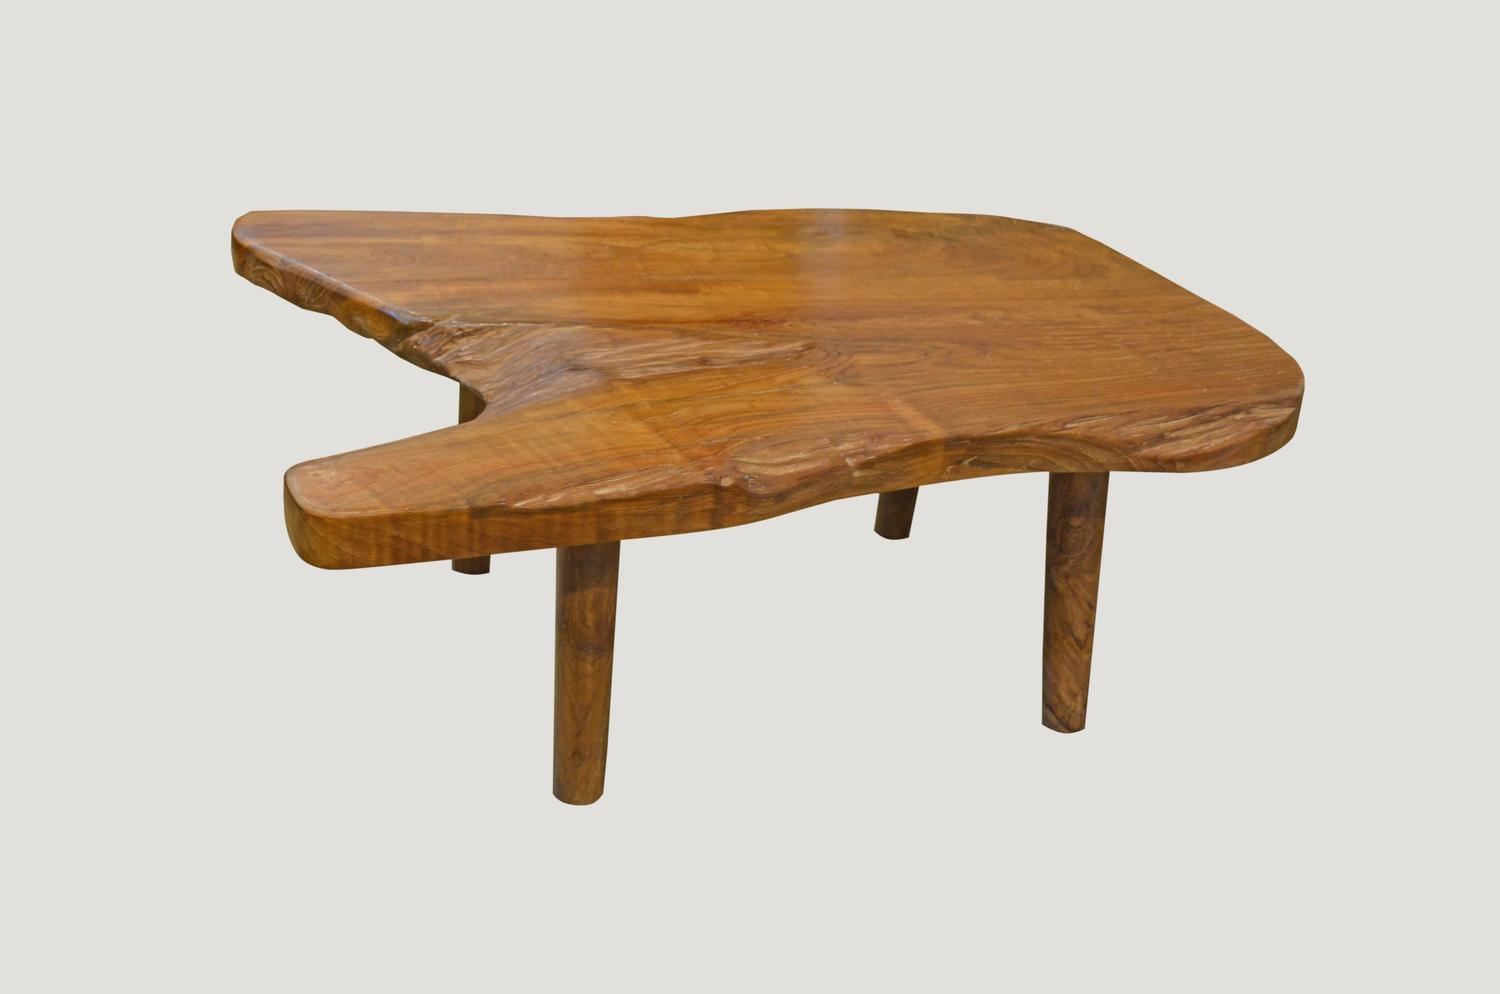 Mid Century Style Organic Teak Wood Coffee Table Or Side Table For Sale At 1stdibs